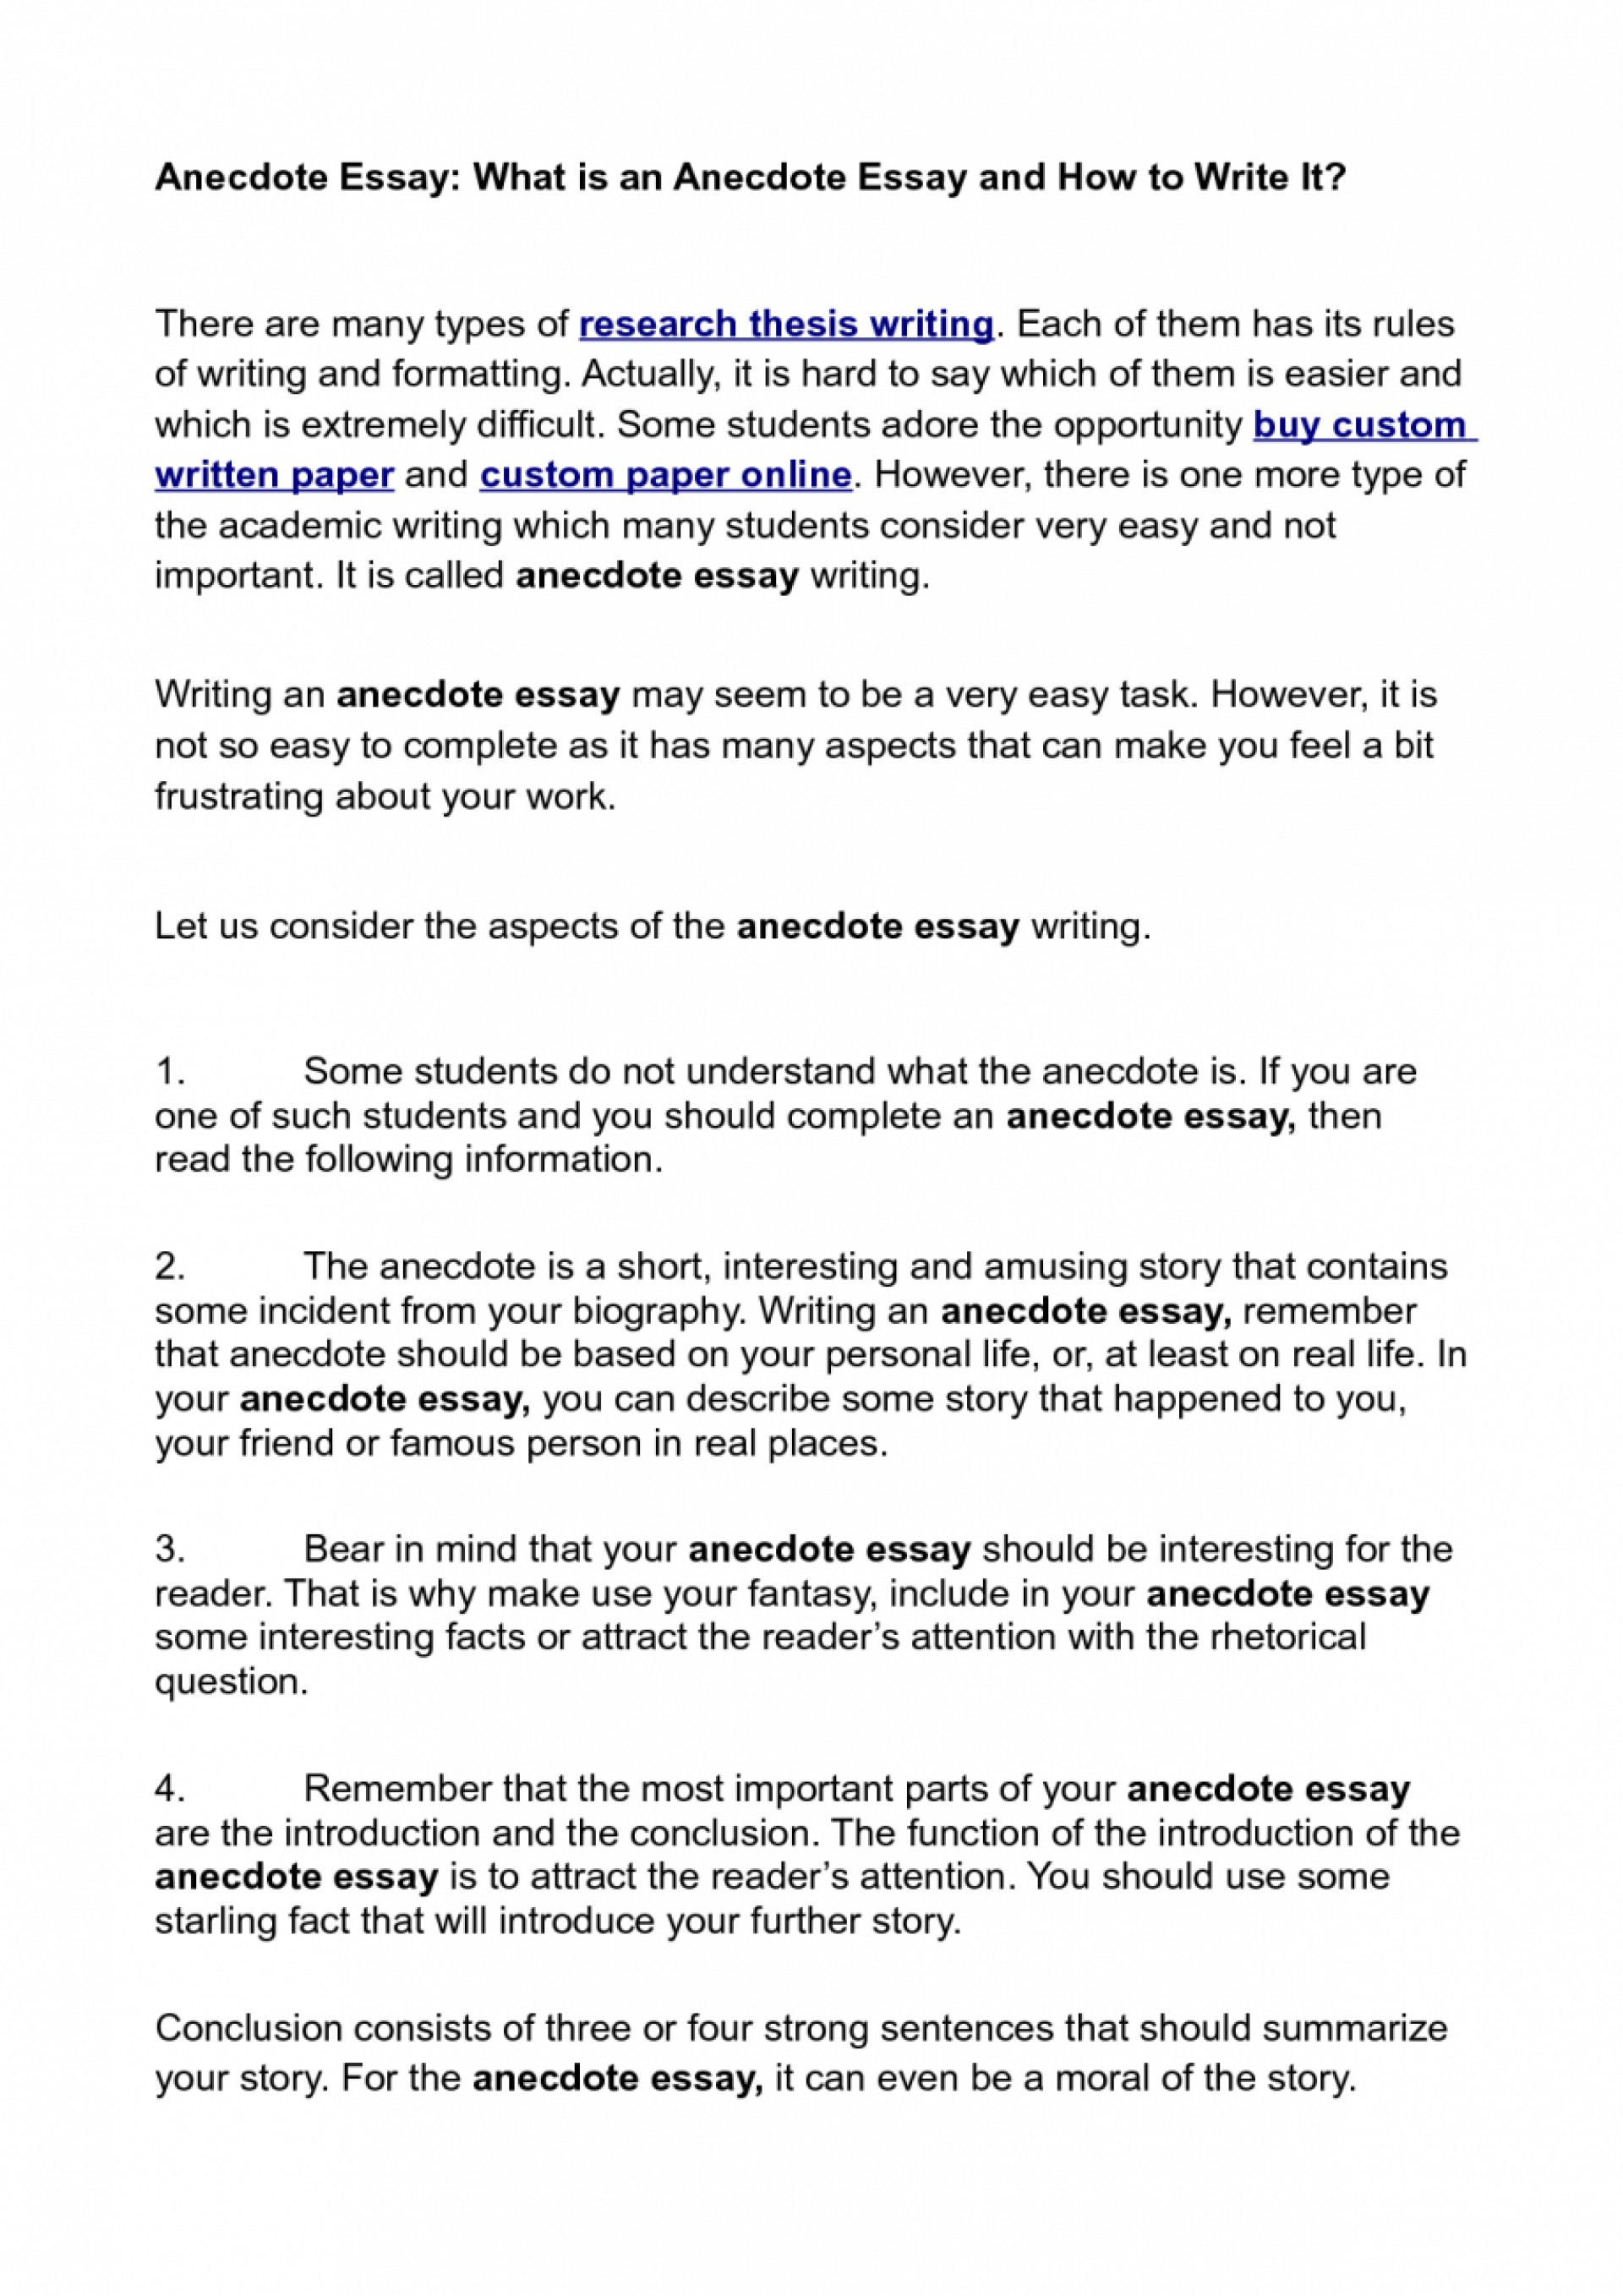 003 Anecdote Sample Essay Ideas Collection Cover Letter Template Fors Of Anecdotes In Essays How To